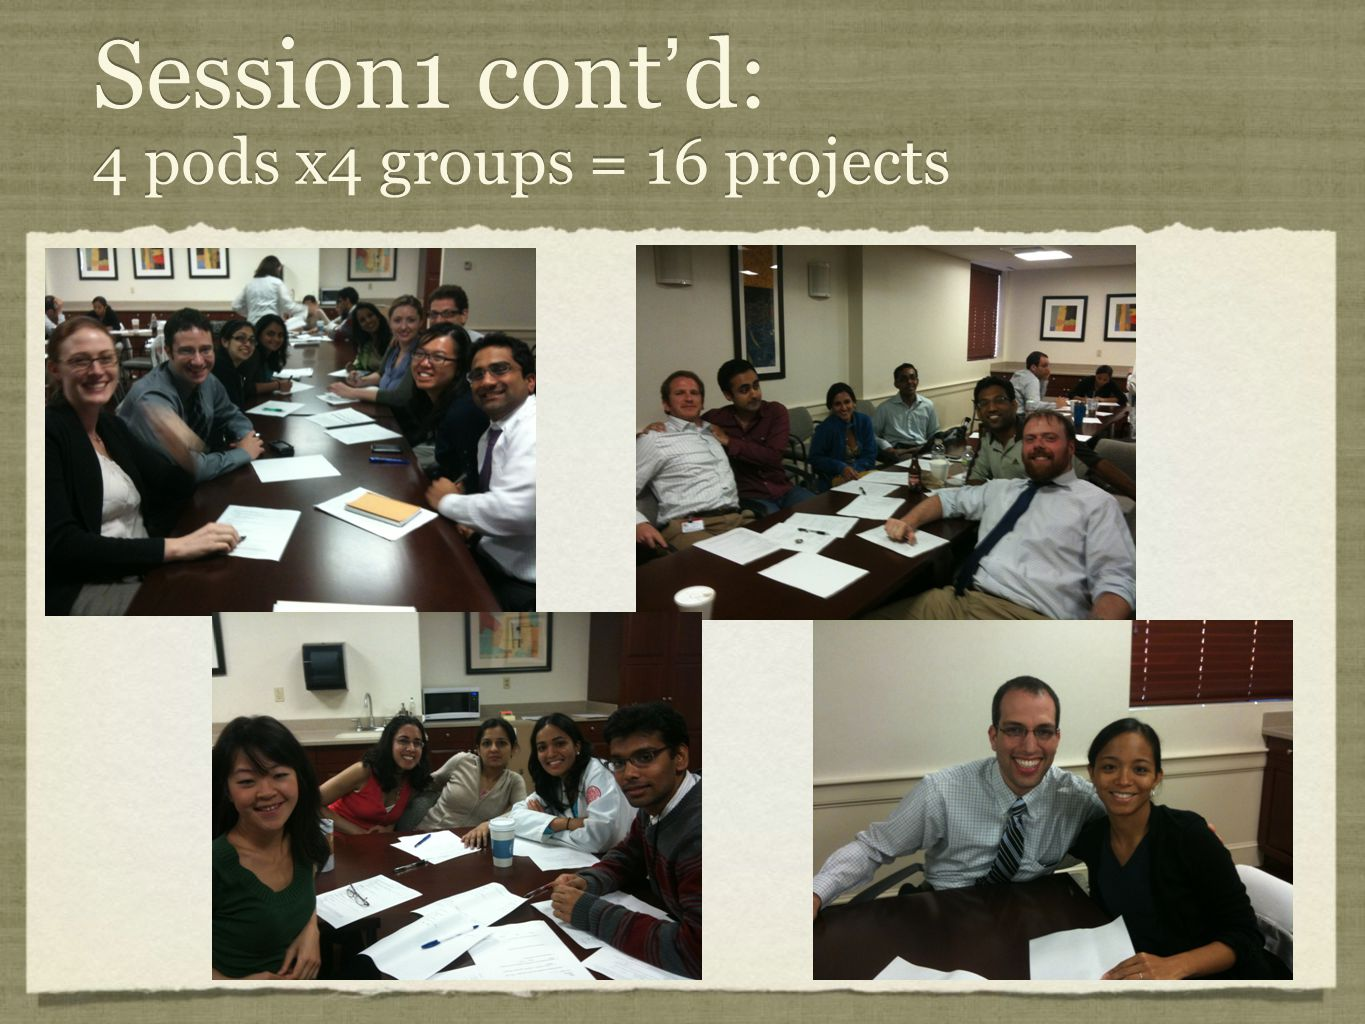 Session1 cont ' d: 4 pods x4 groups = 16 projects